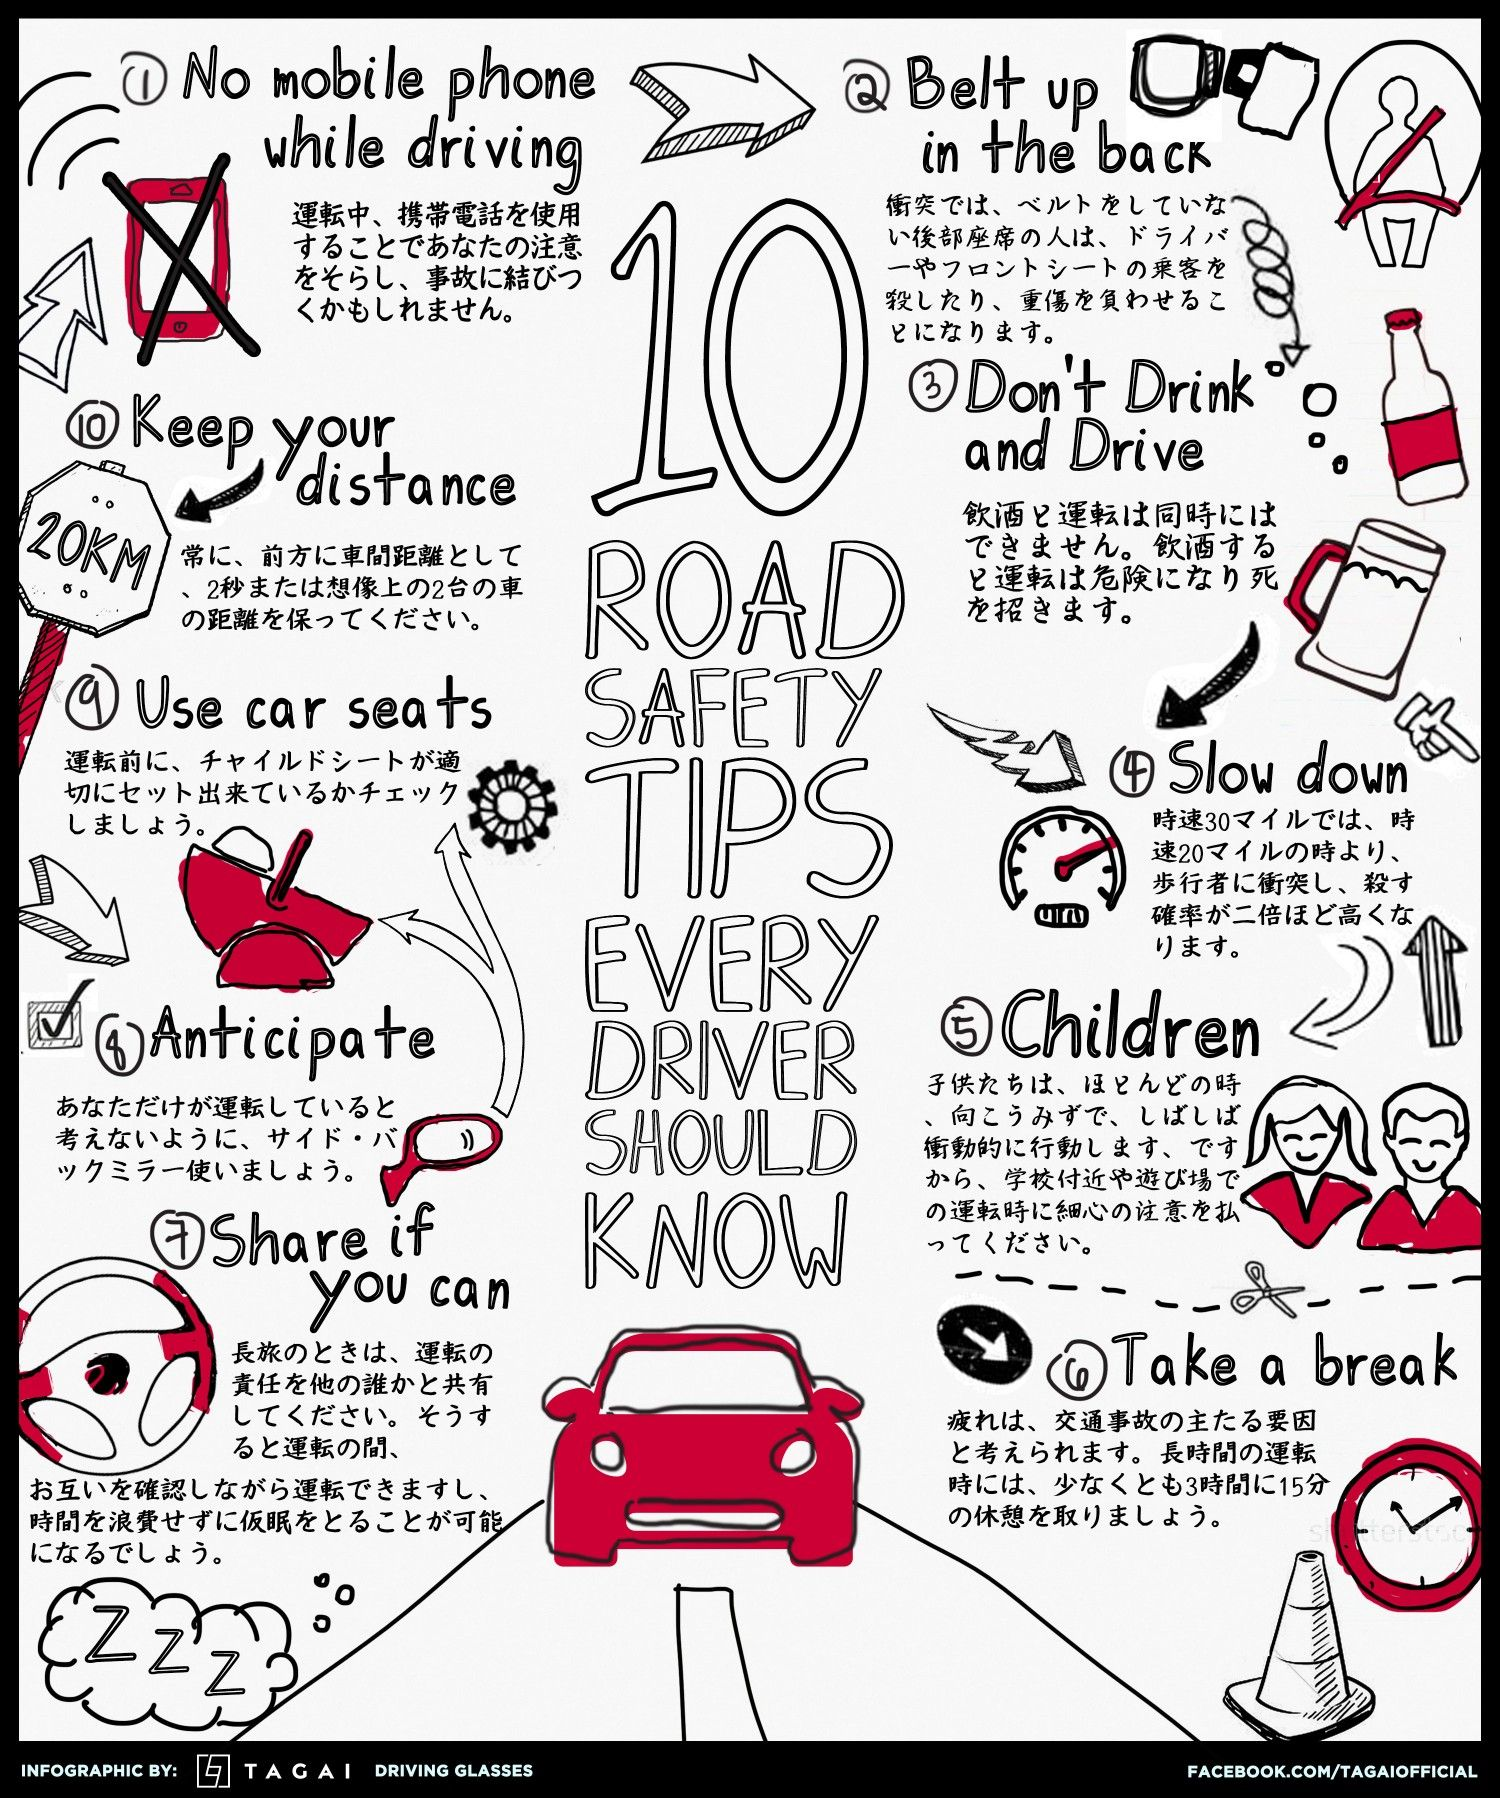 Top Ten Road Safety Tips for Drivers Infographic Road